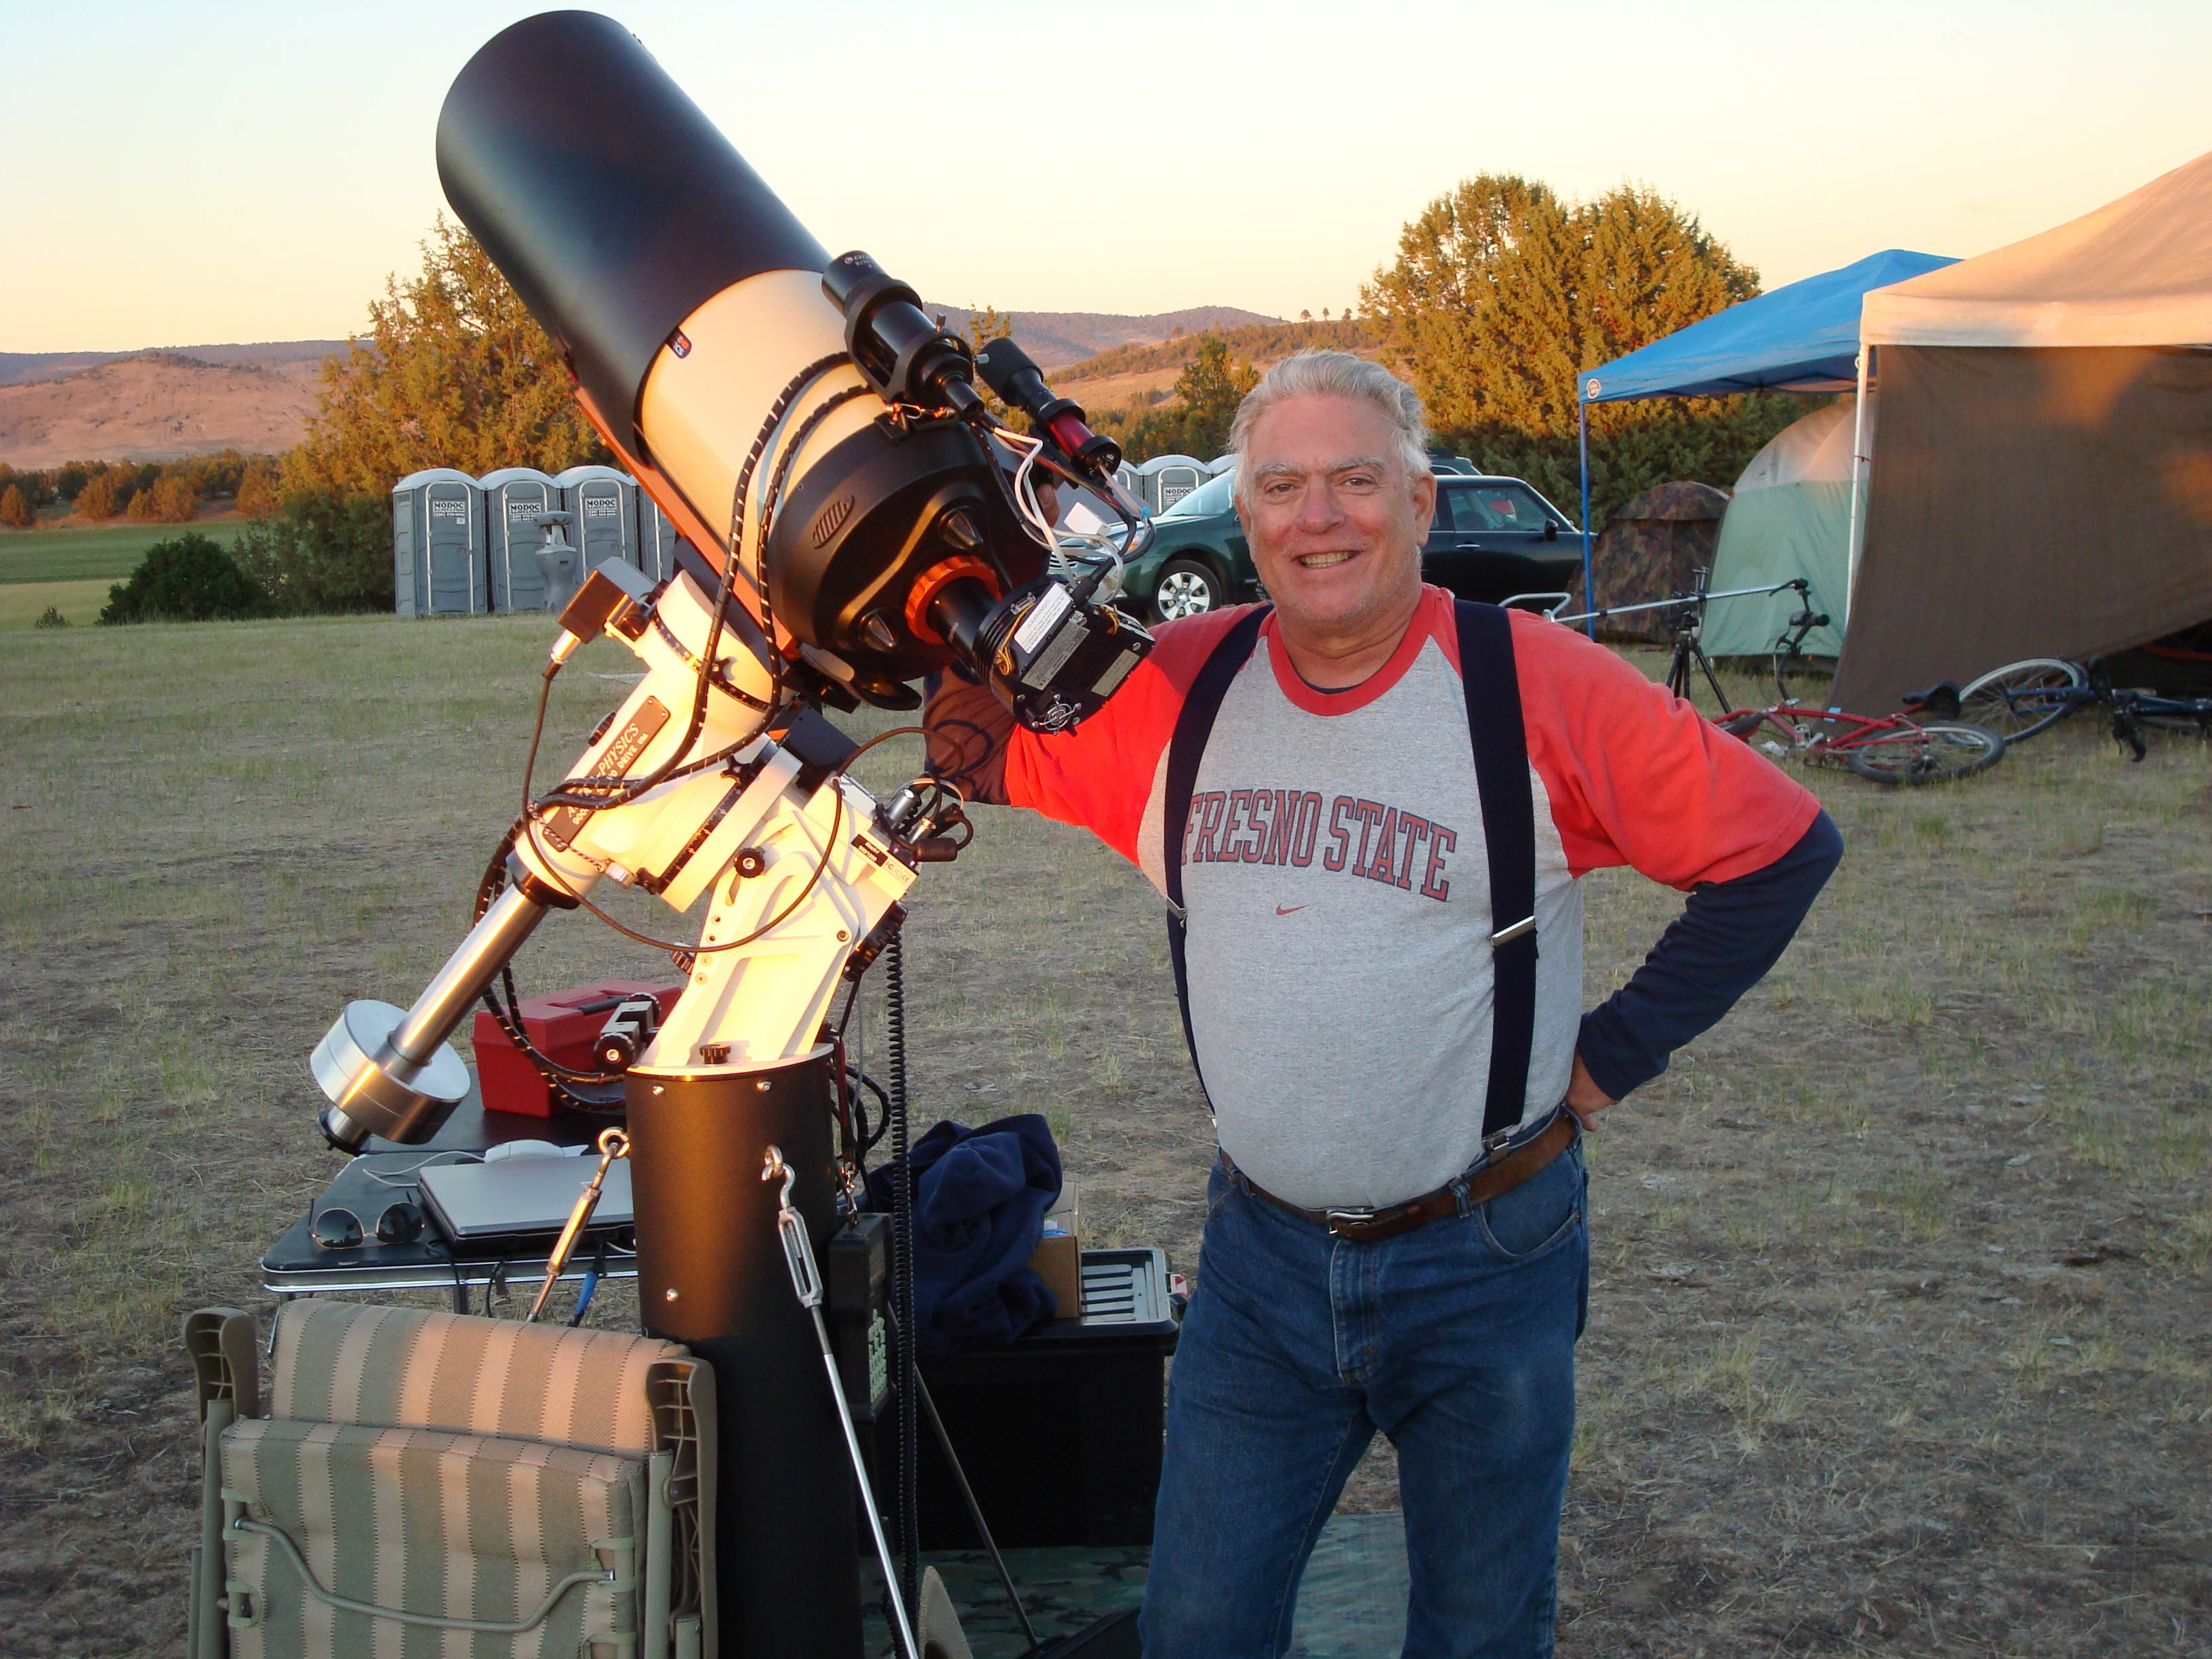 Golden State Star Party - June 2014